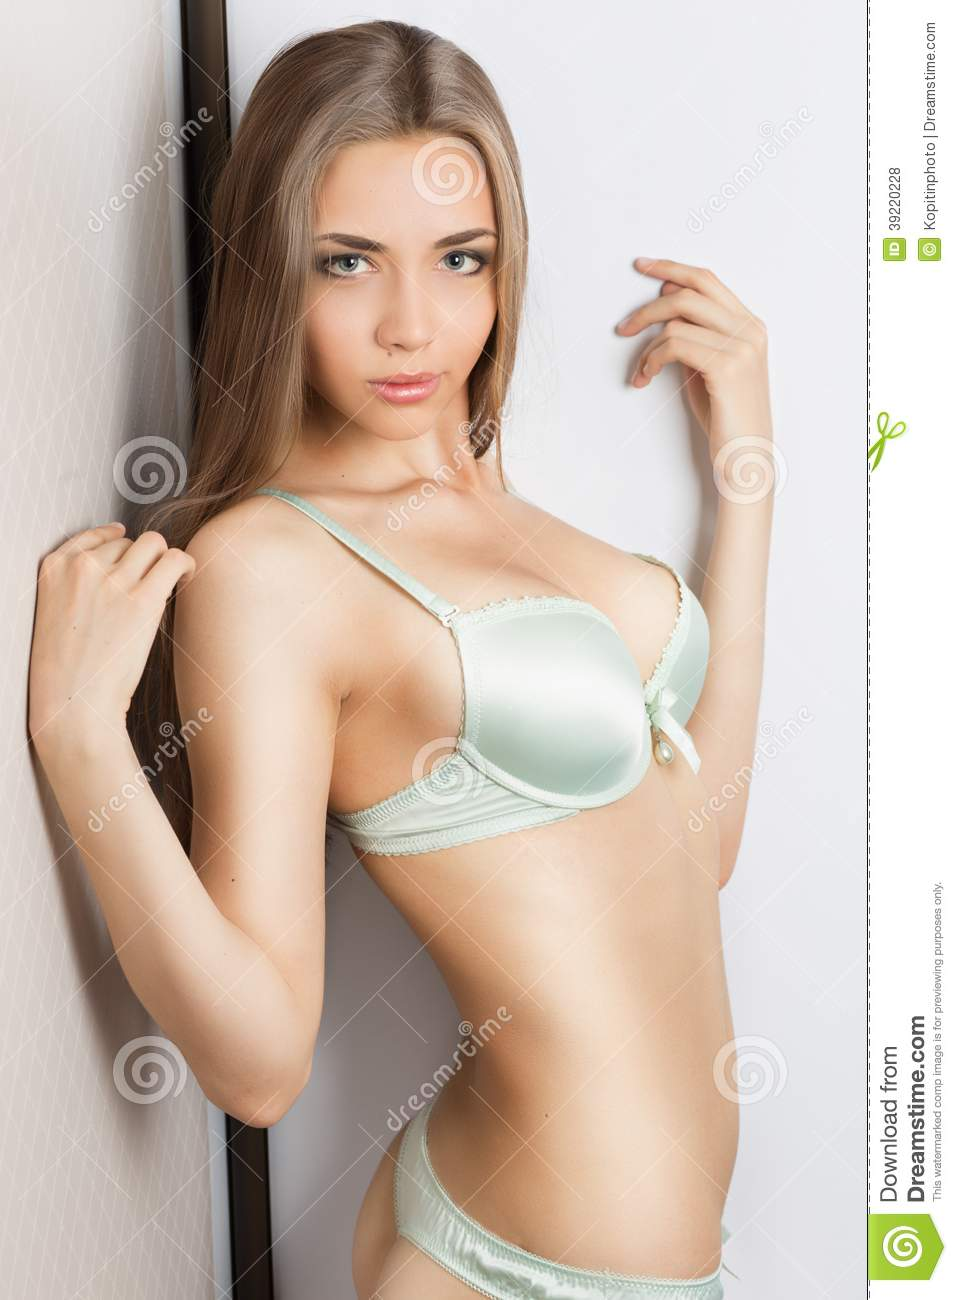 Hot sexy girl bra models seems remarkable